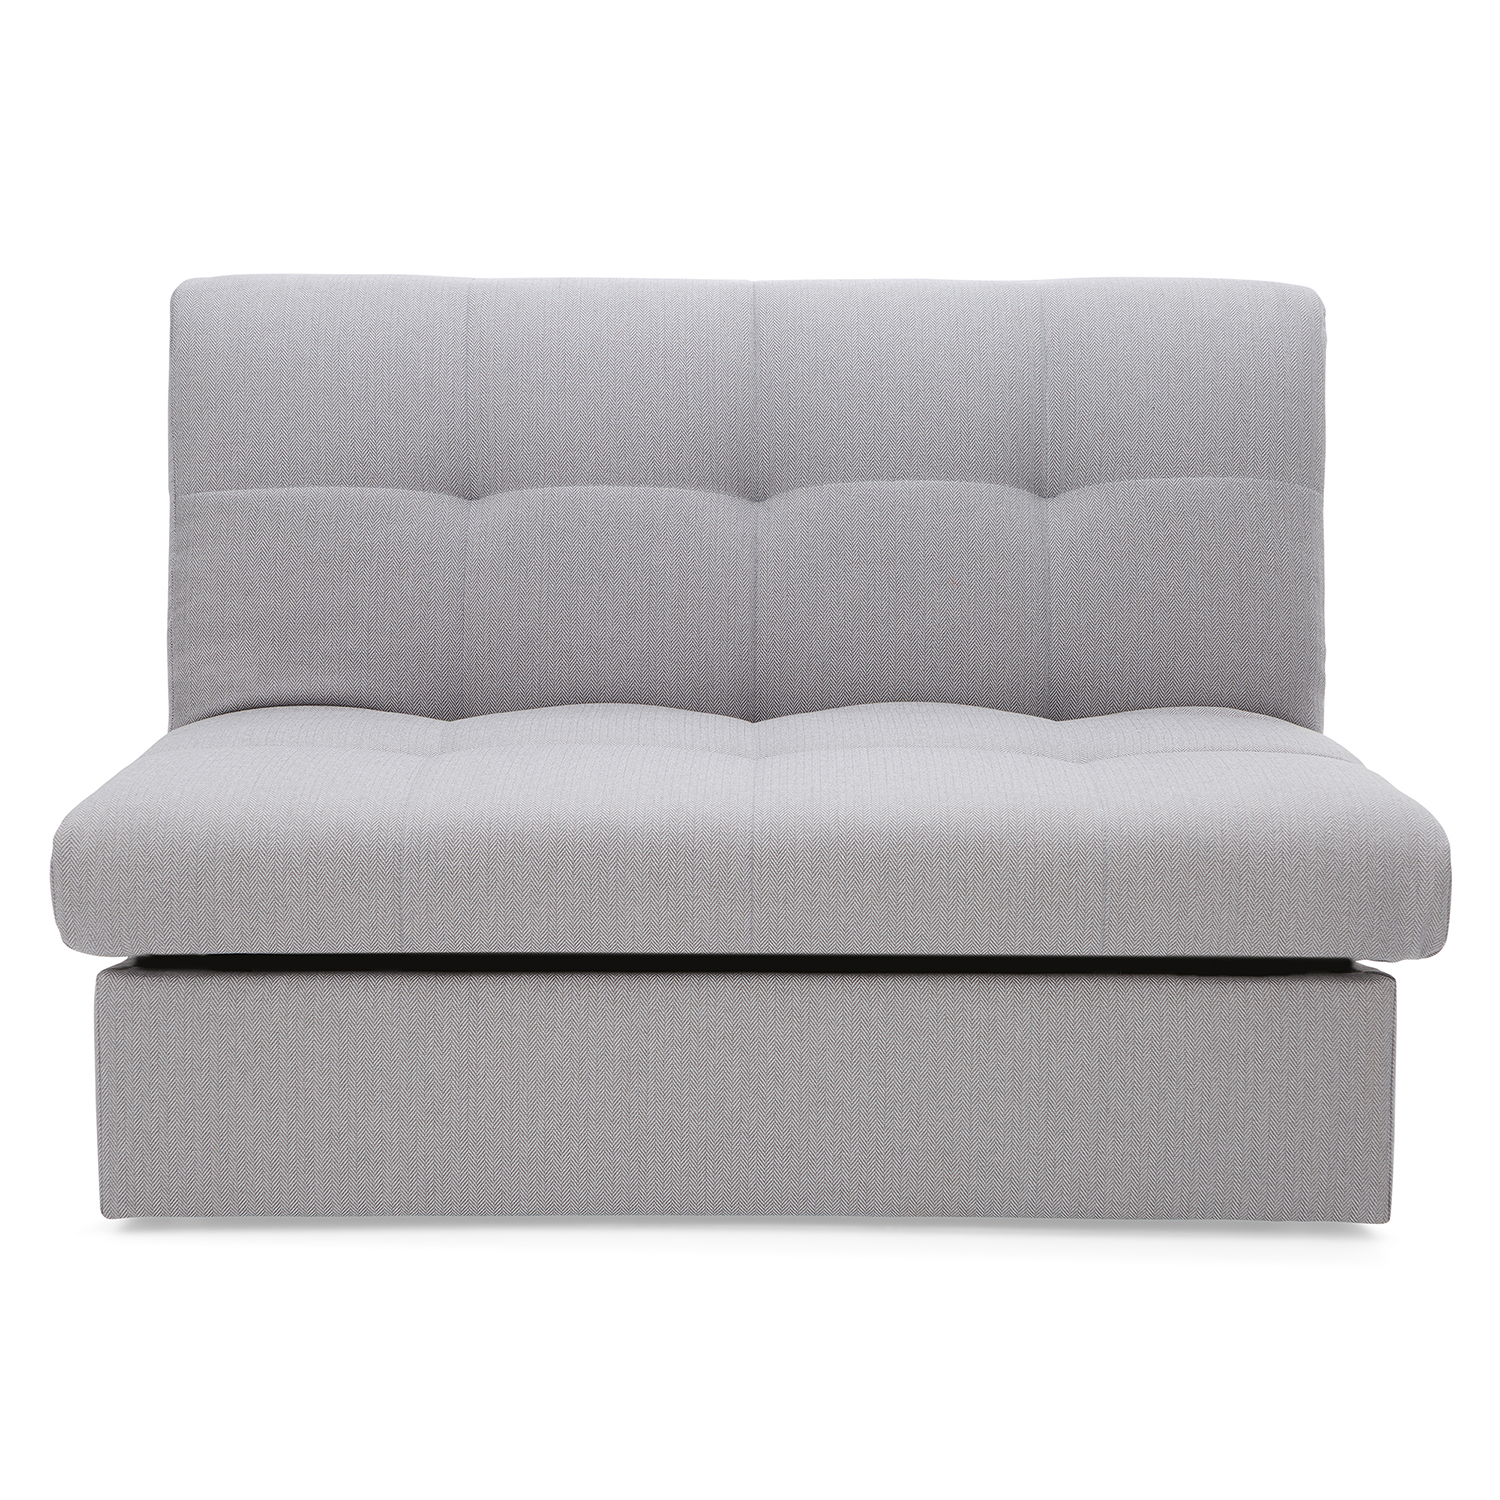 Rowan Small Double Sofa Bed Grey Herringbone Dunelm